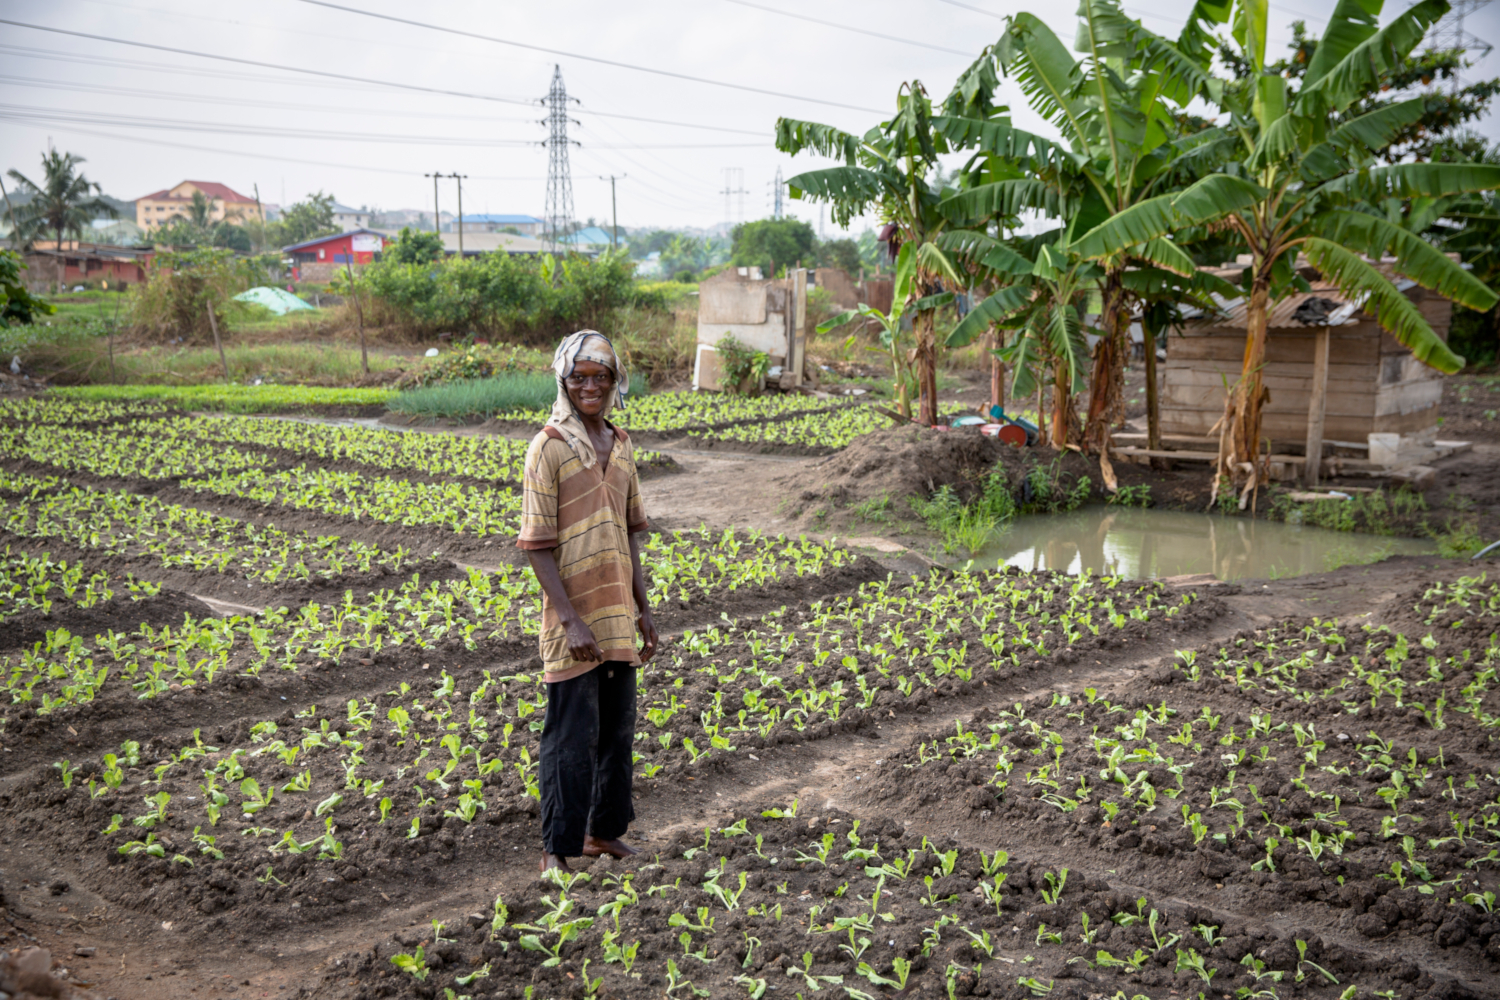 Wastewater irrigation in urban agriculture. Ghana. (credits: IWMI Flickr Photos / Flickr Creative Commons Attribution-NonCommercial-NoDerivs 2.0 Generic (CC BY-NC-ND 2.0))